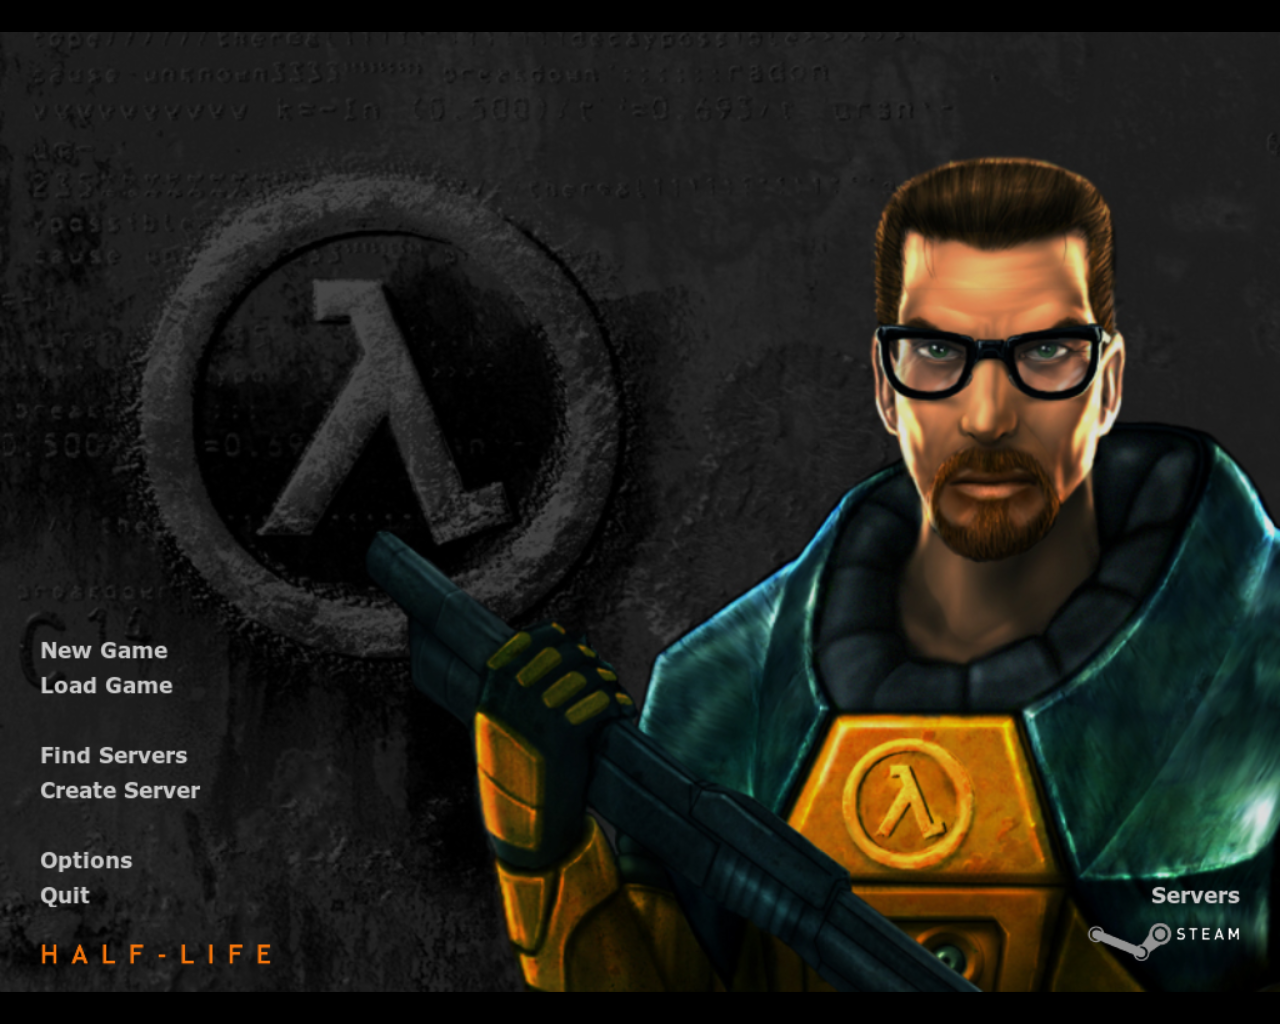 Half-Life Linux The title and main menu